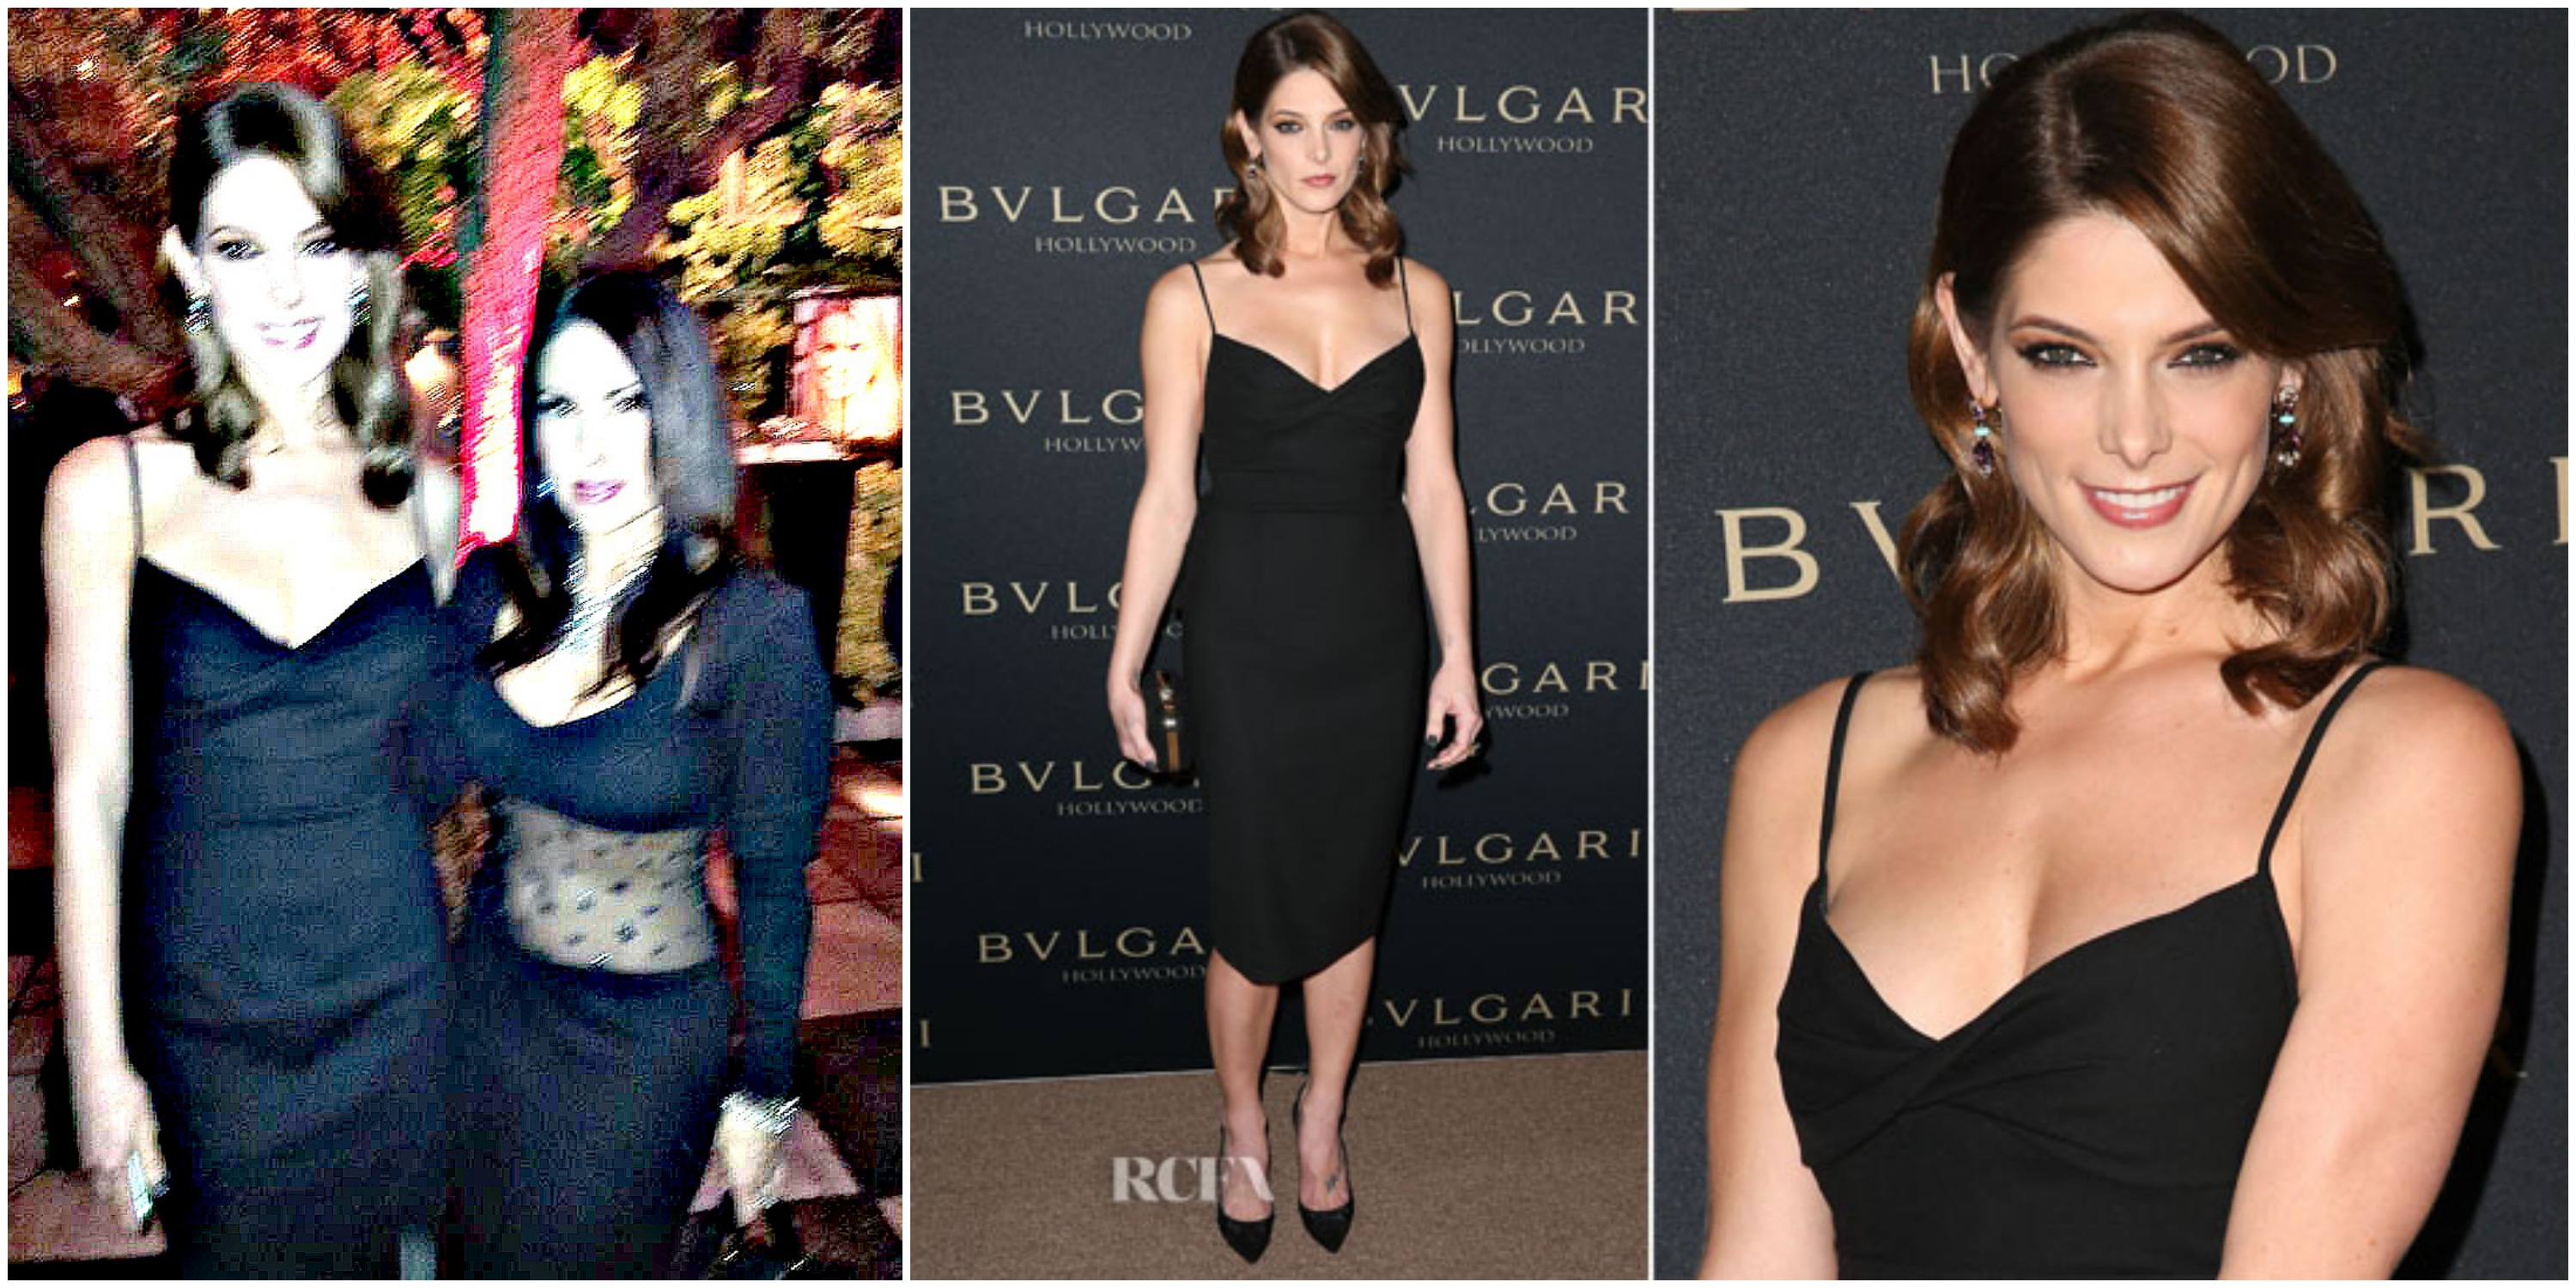 Ashley-Greene-Ann-Lauren-Bvlgari-Decades-of-Glamour